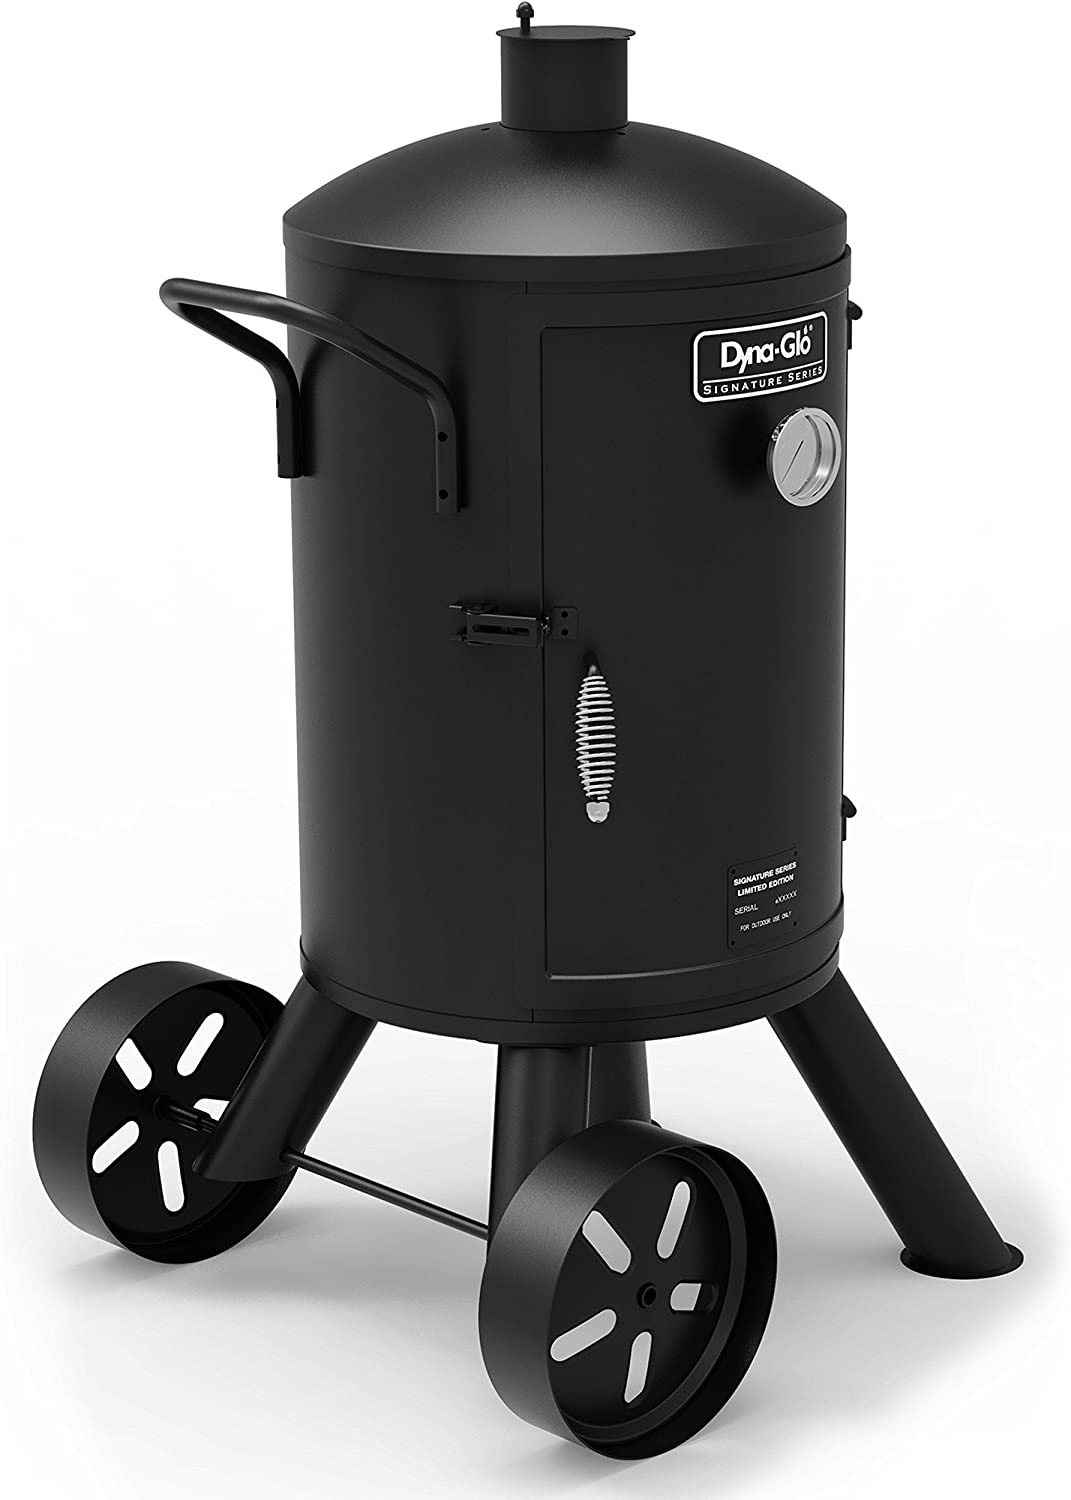 Dyna-Glo Signature Series DGSS681VCS-D Heavy-Duty Vertical Charcoal Smoker review